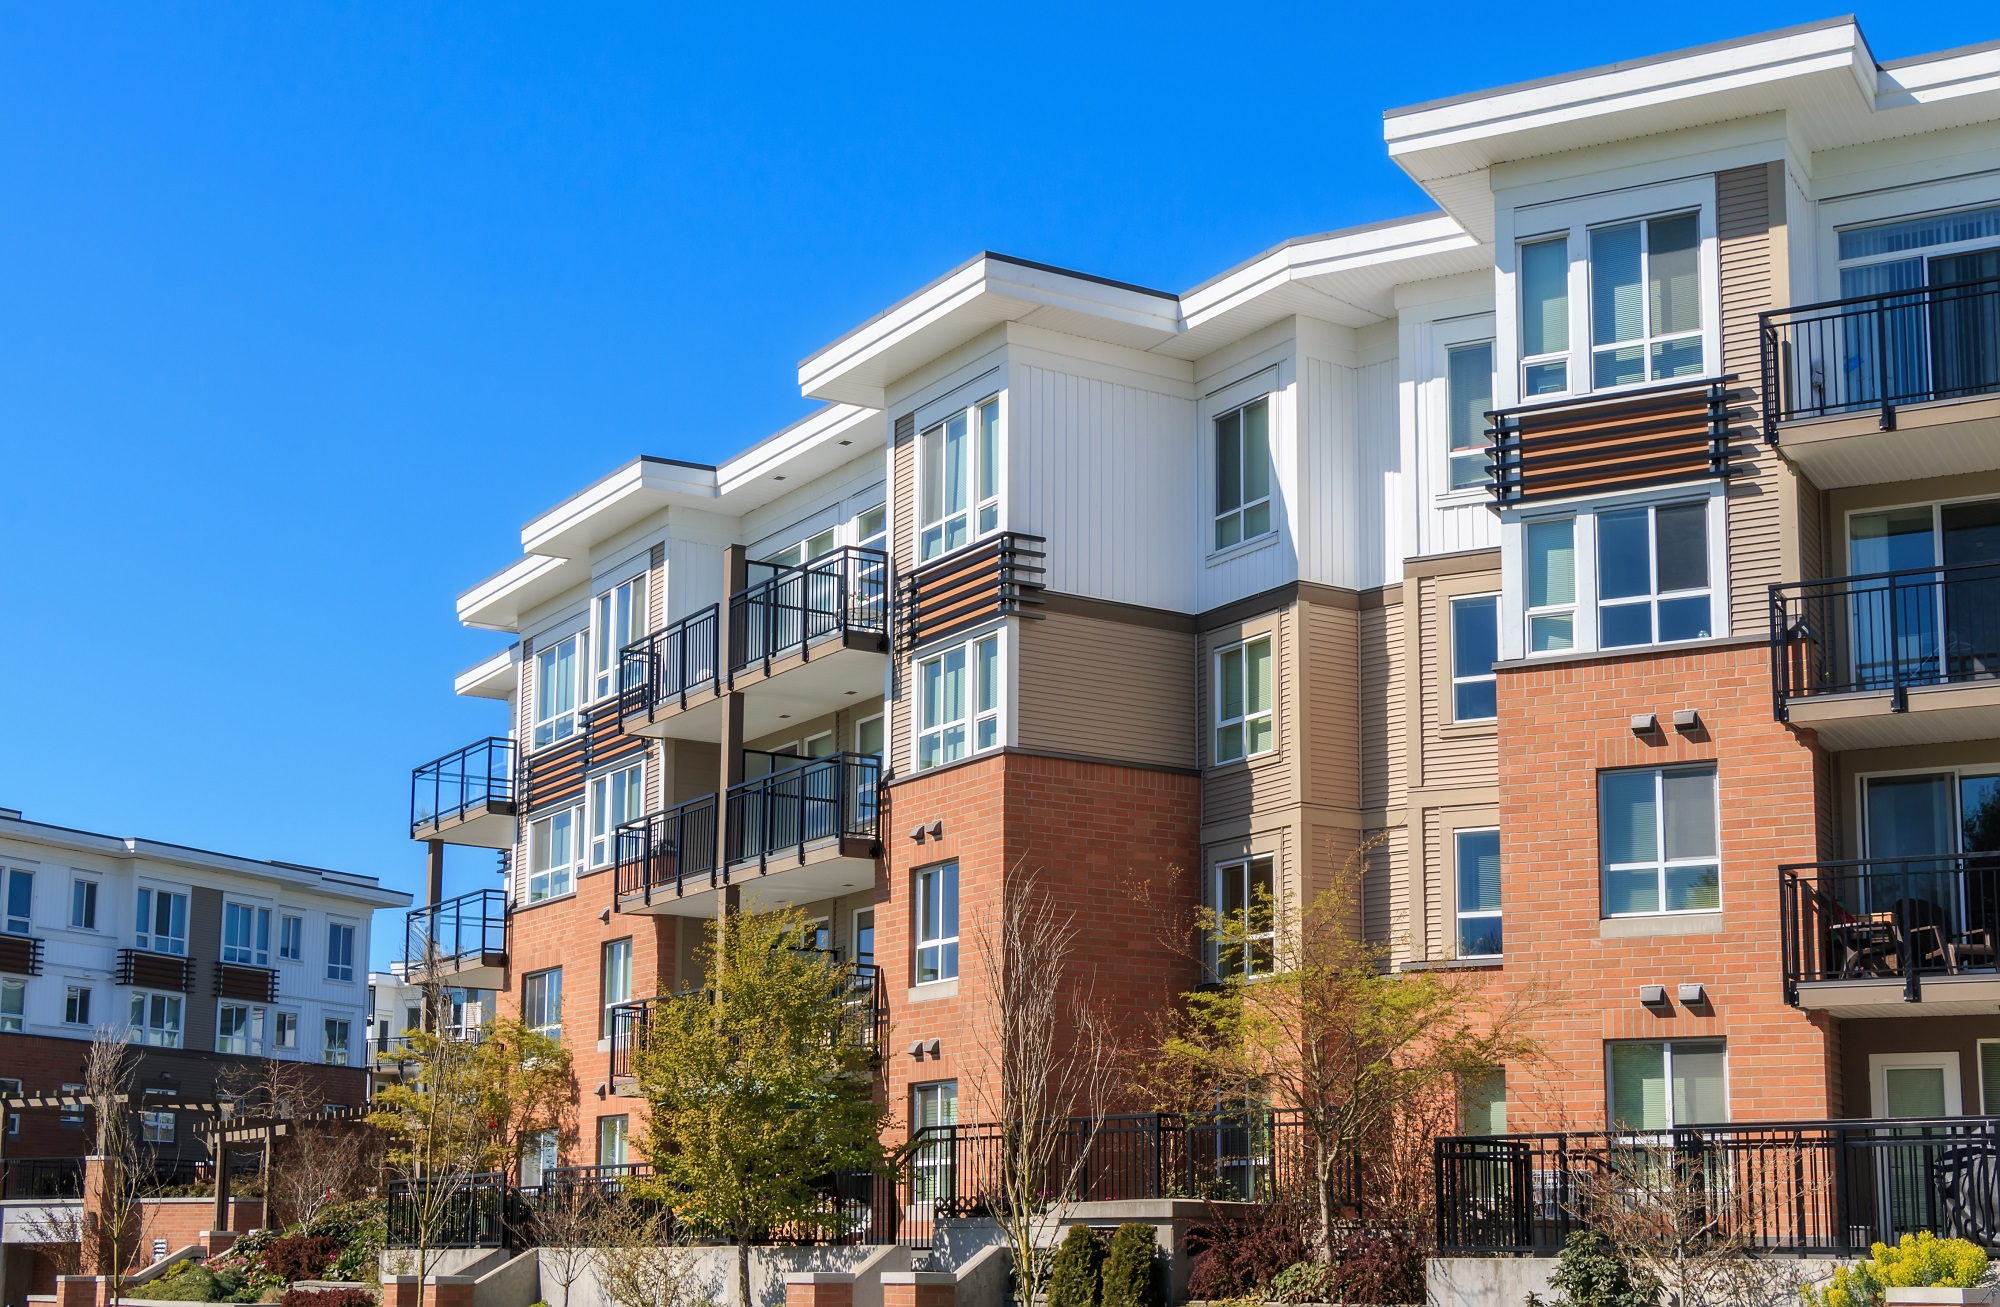 Nice The 5 Essentials Of A Successful Apartment Acquisition   Multifamily  Executive Magazine   Mergers And Acquisitions, Apartment Sales, Investing,  ...